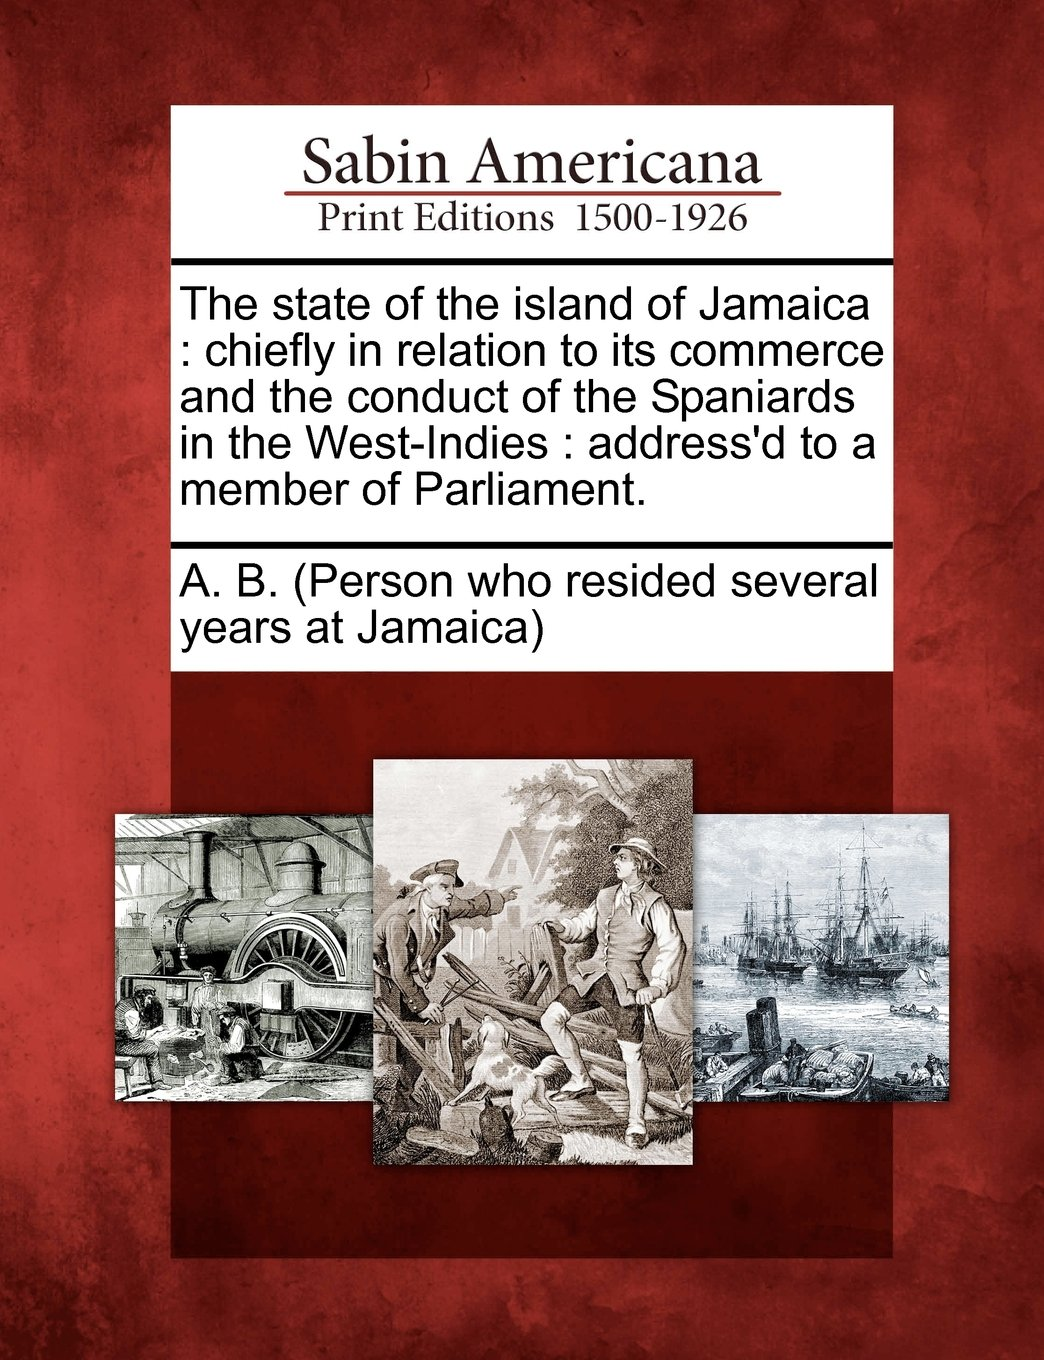 The state of the island of Jamaica: chiefly in relation to its commerce and the conduct of the Spaniards in the West-Indies : address'd to a member of Parliament.